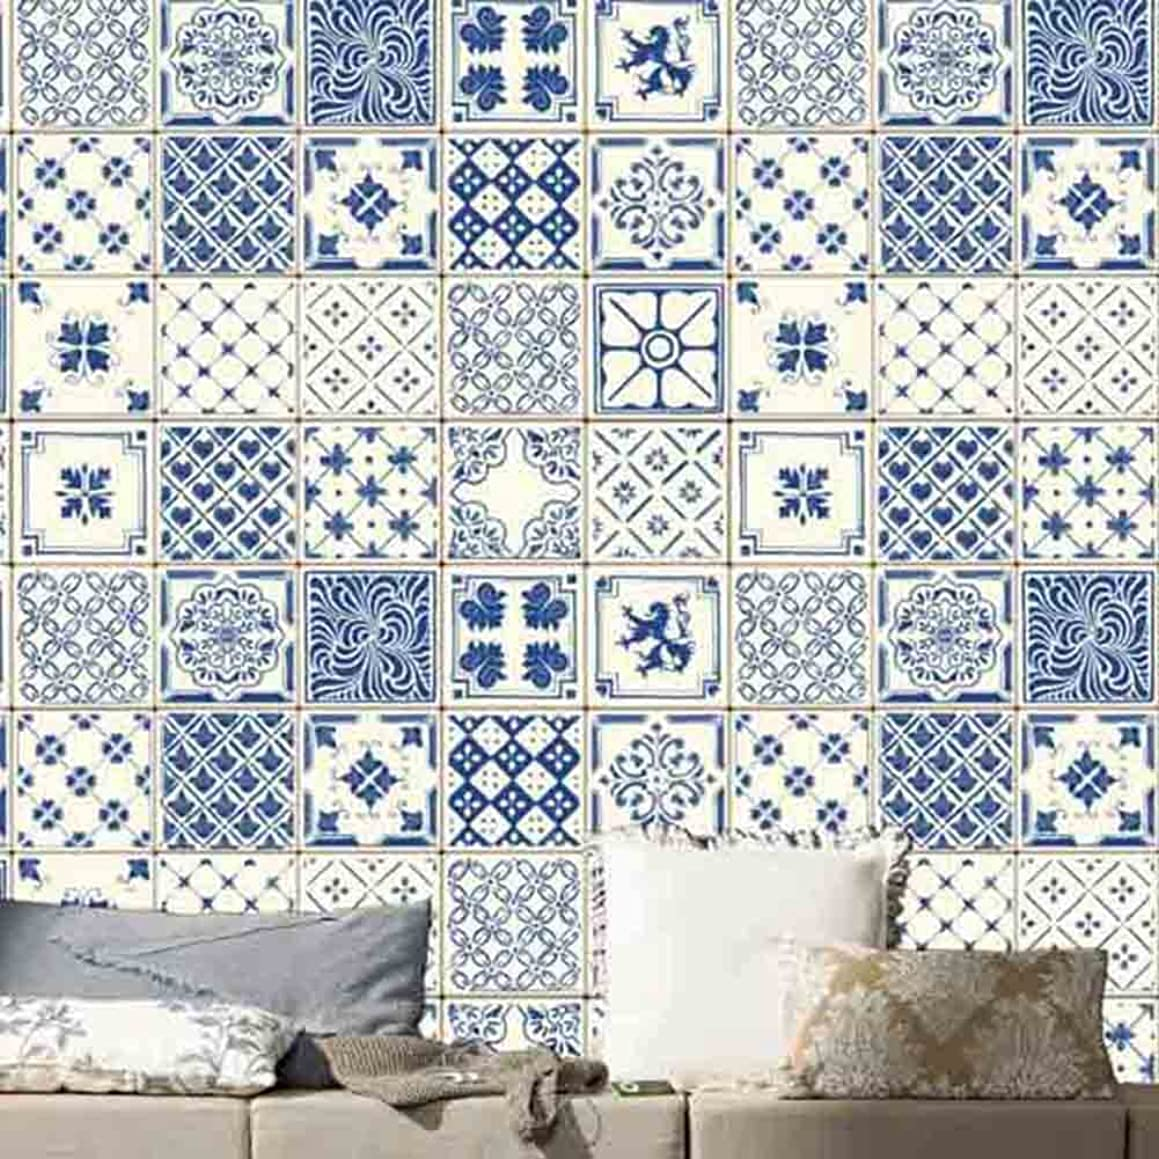 Peyan Blue Tiles Stickers European Style Bedroom Wall Stickers Kitchen Wallpaper Decorative Tiles (8x8 inches,Set of 20)